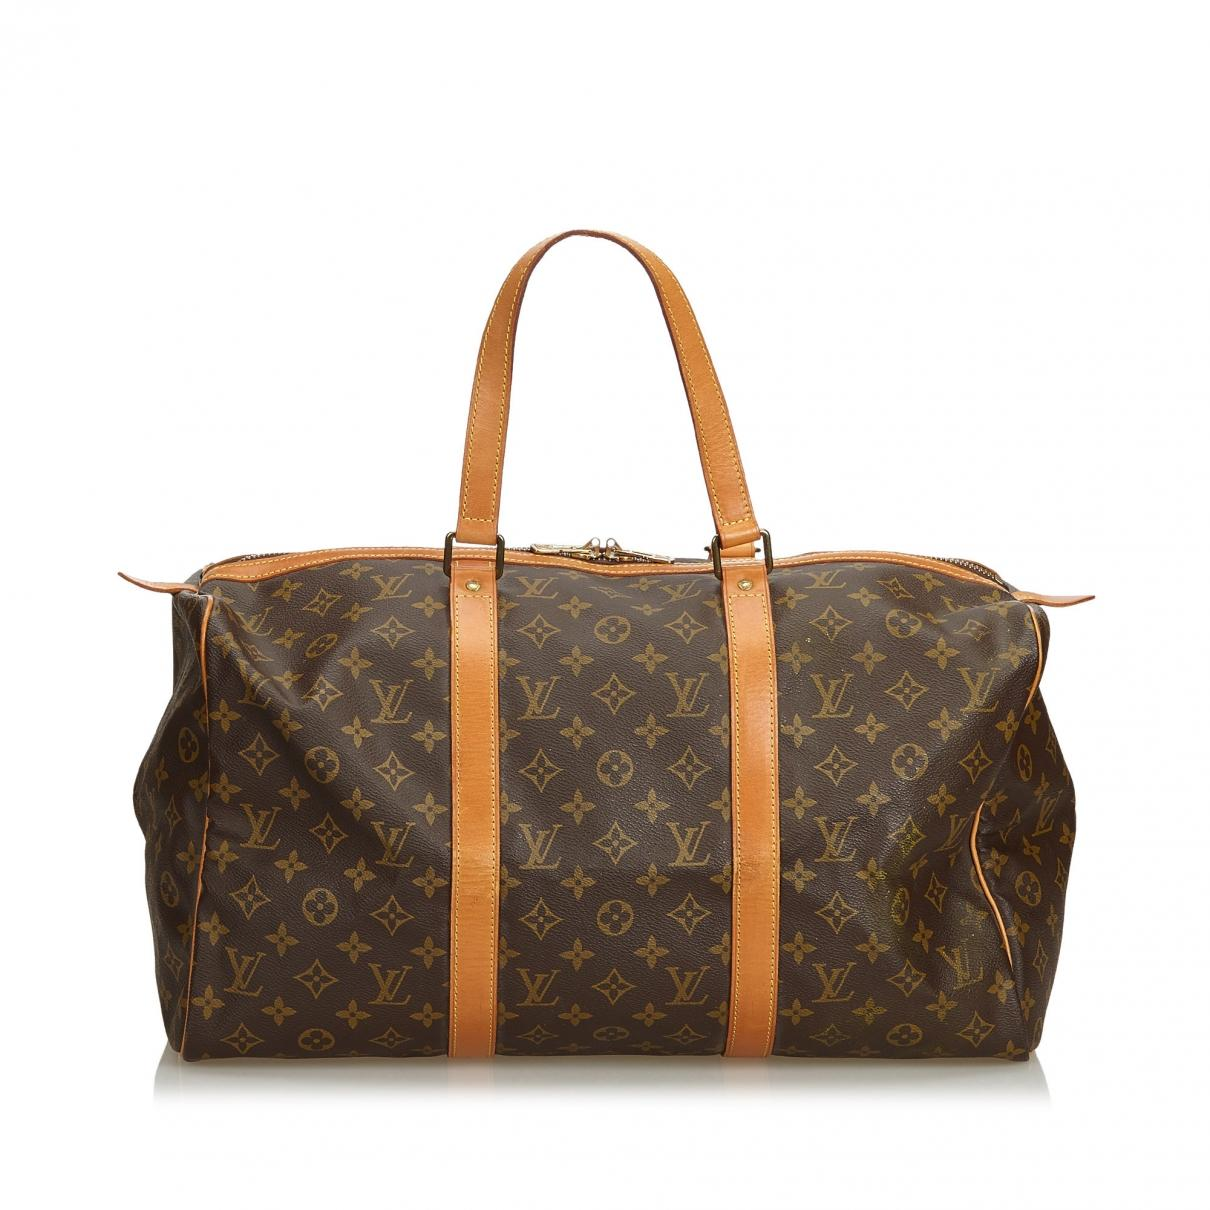 766bcebe4625 Lyst - Louis Vuitton Pre-owned Keepall Brown Cloth Travel Bags in Brown